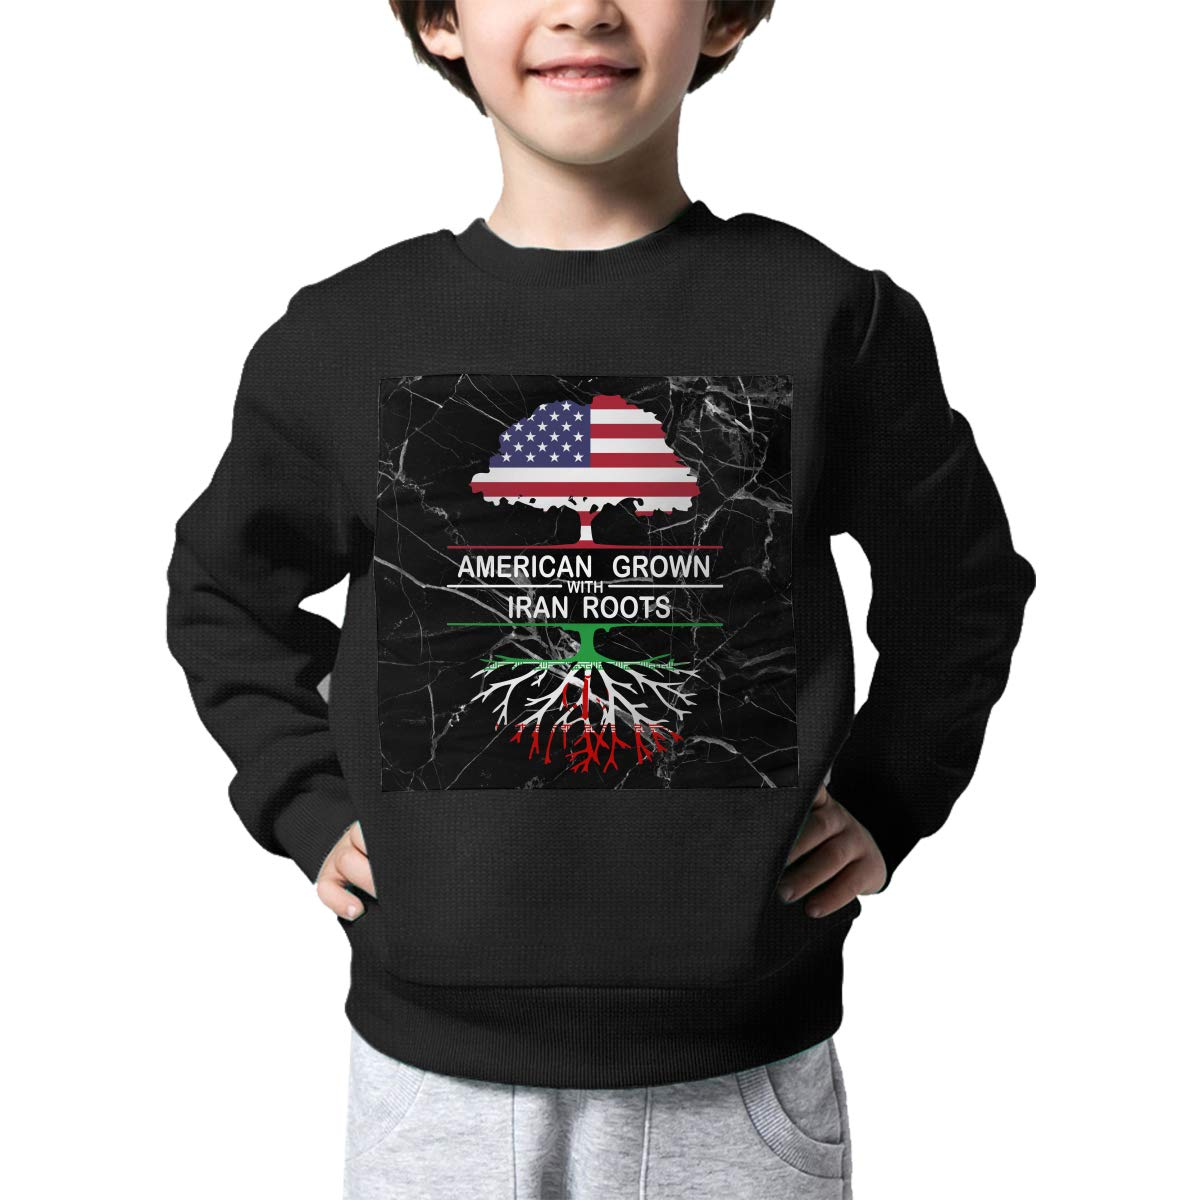 American Grown with Iran Roots Printed Toddler Kids Crew Neck Sweater Long Sleeve Warm Knit Sweatshirt